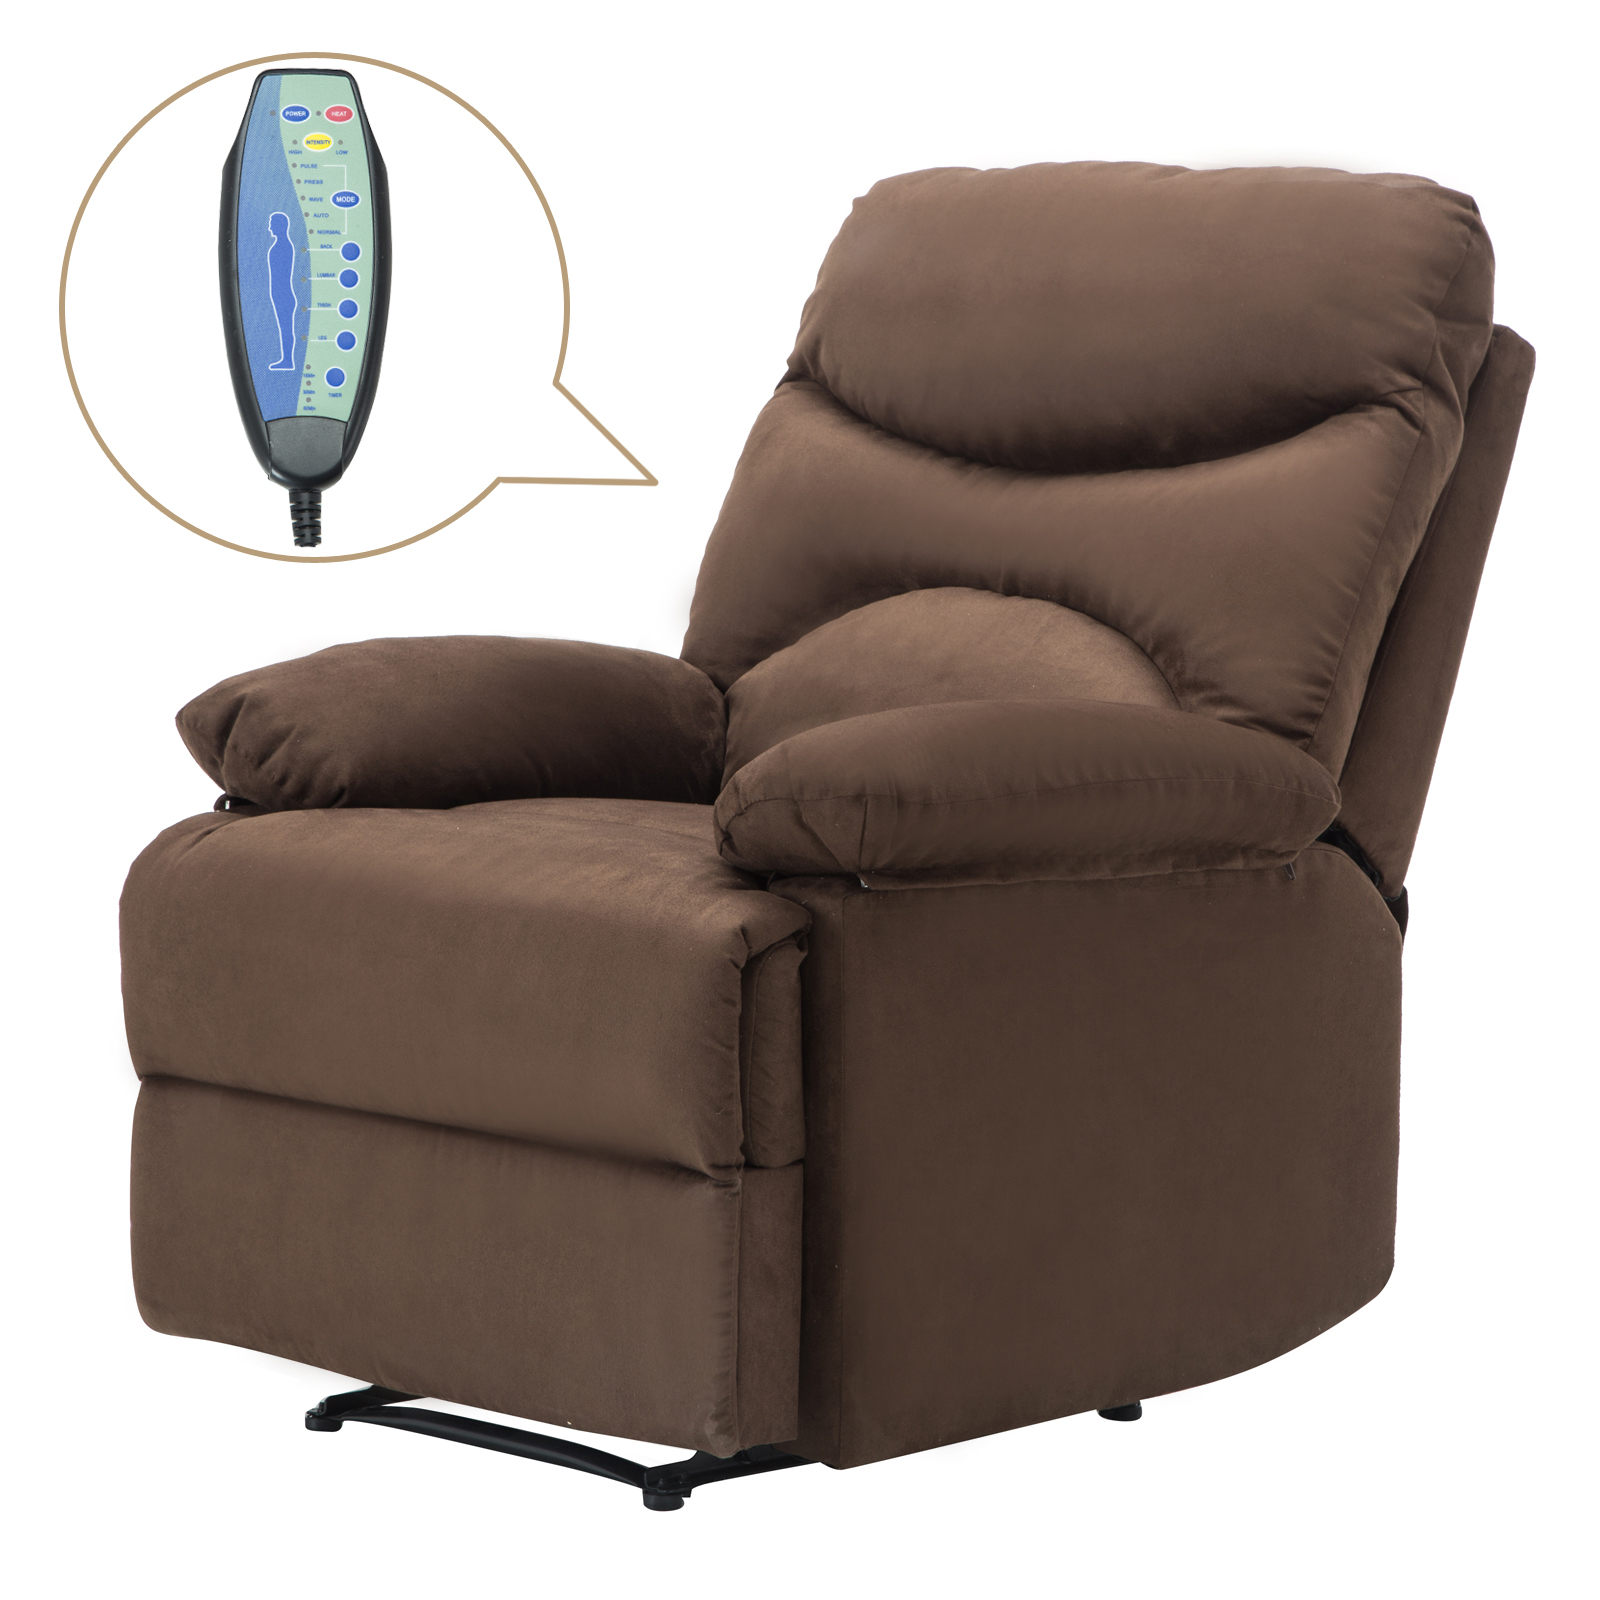 Ergonomic Lounge Heated Microfiber Massage Recliner Sofa Chair w Control